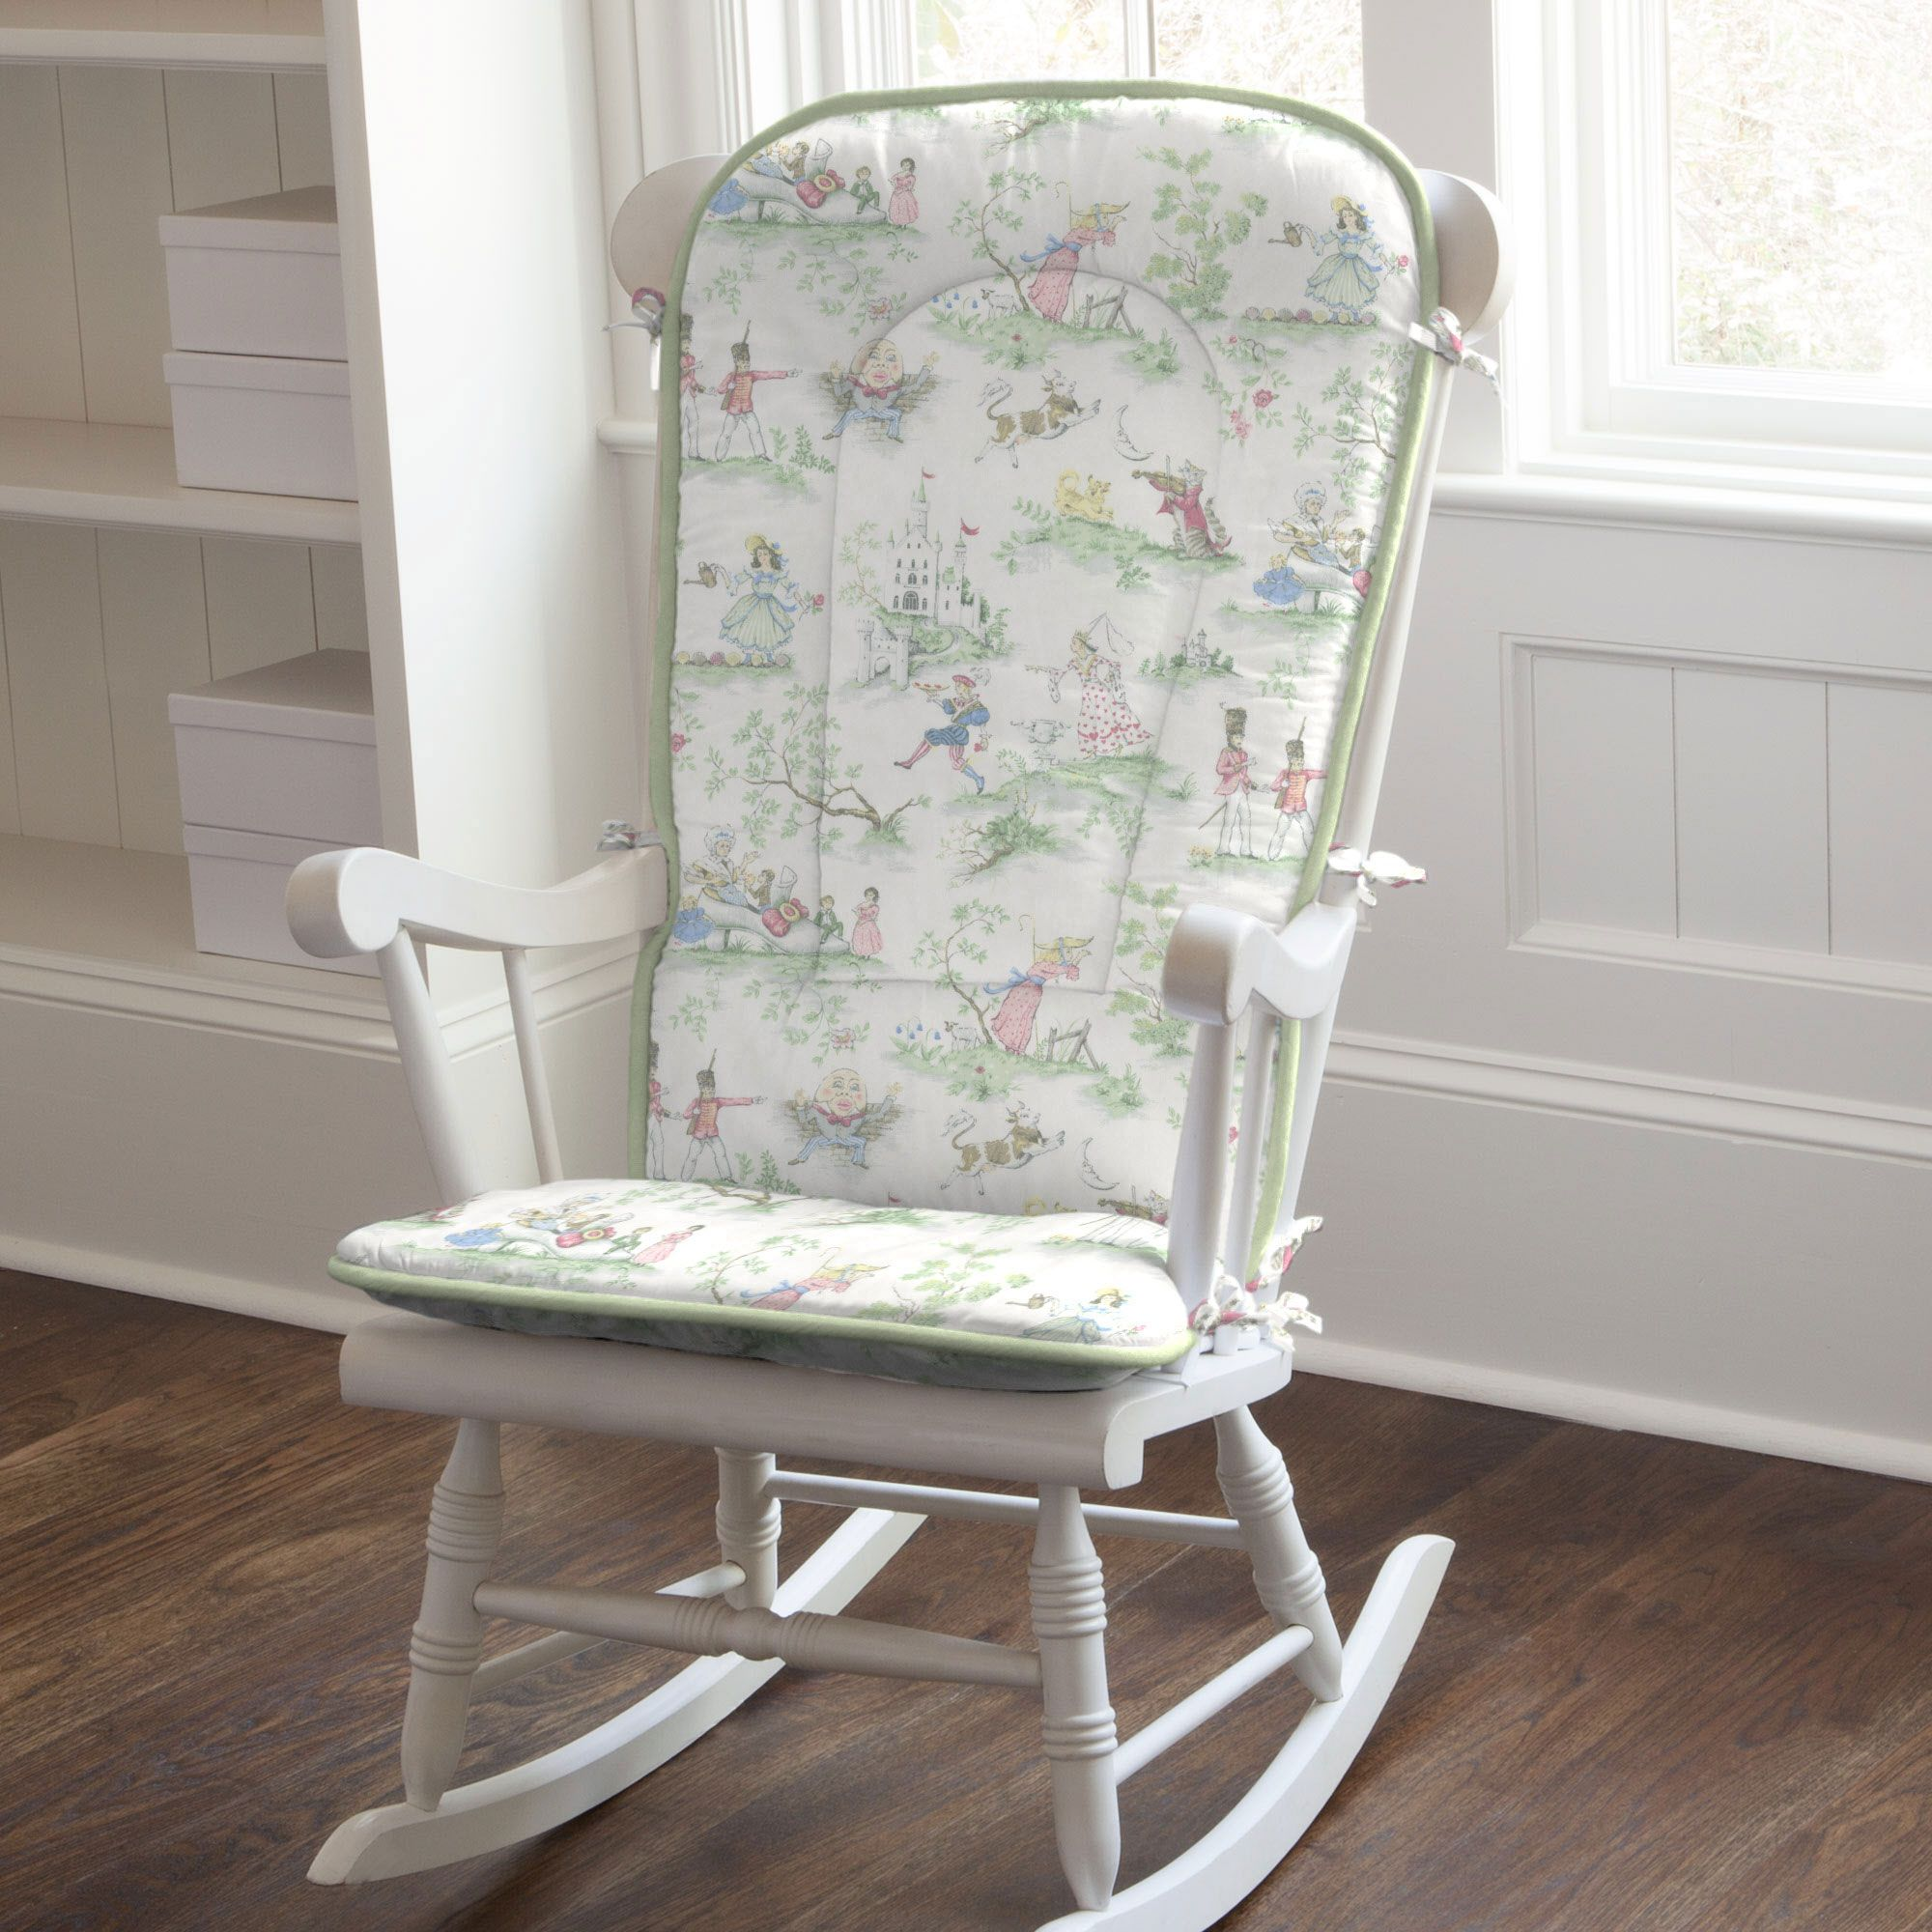 Nursery Rhyme Toile Sage Rocking Chair Pad (With images